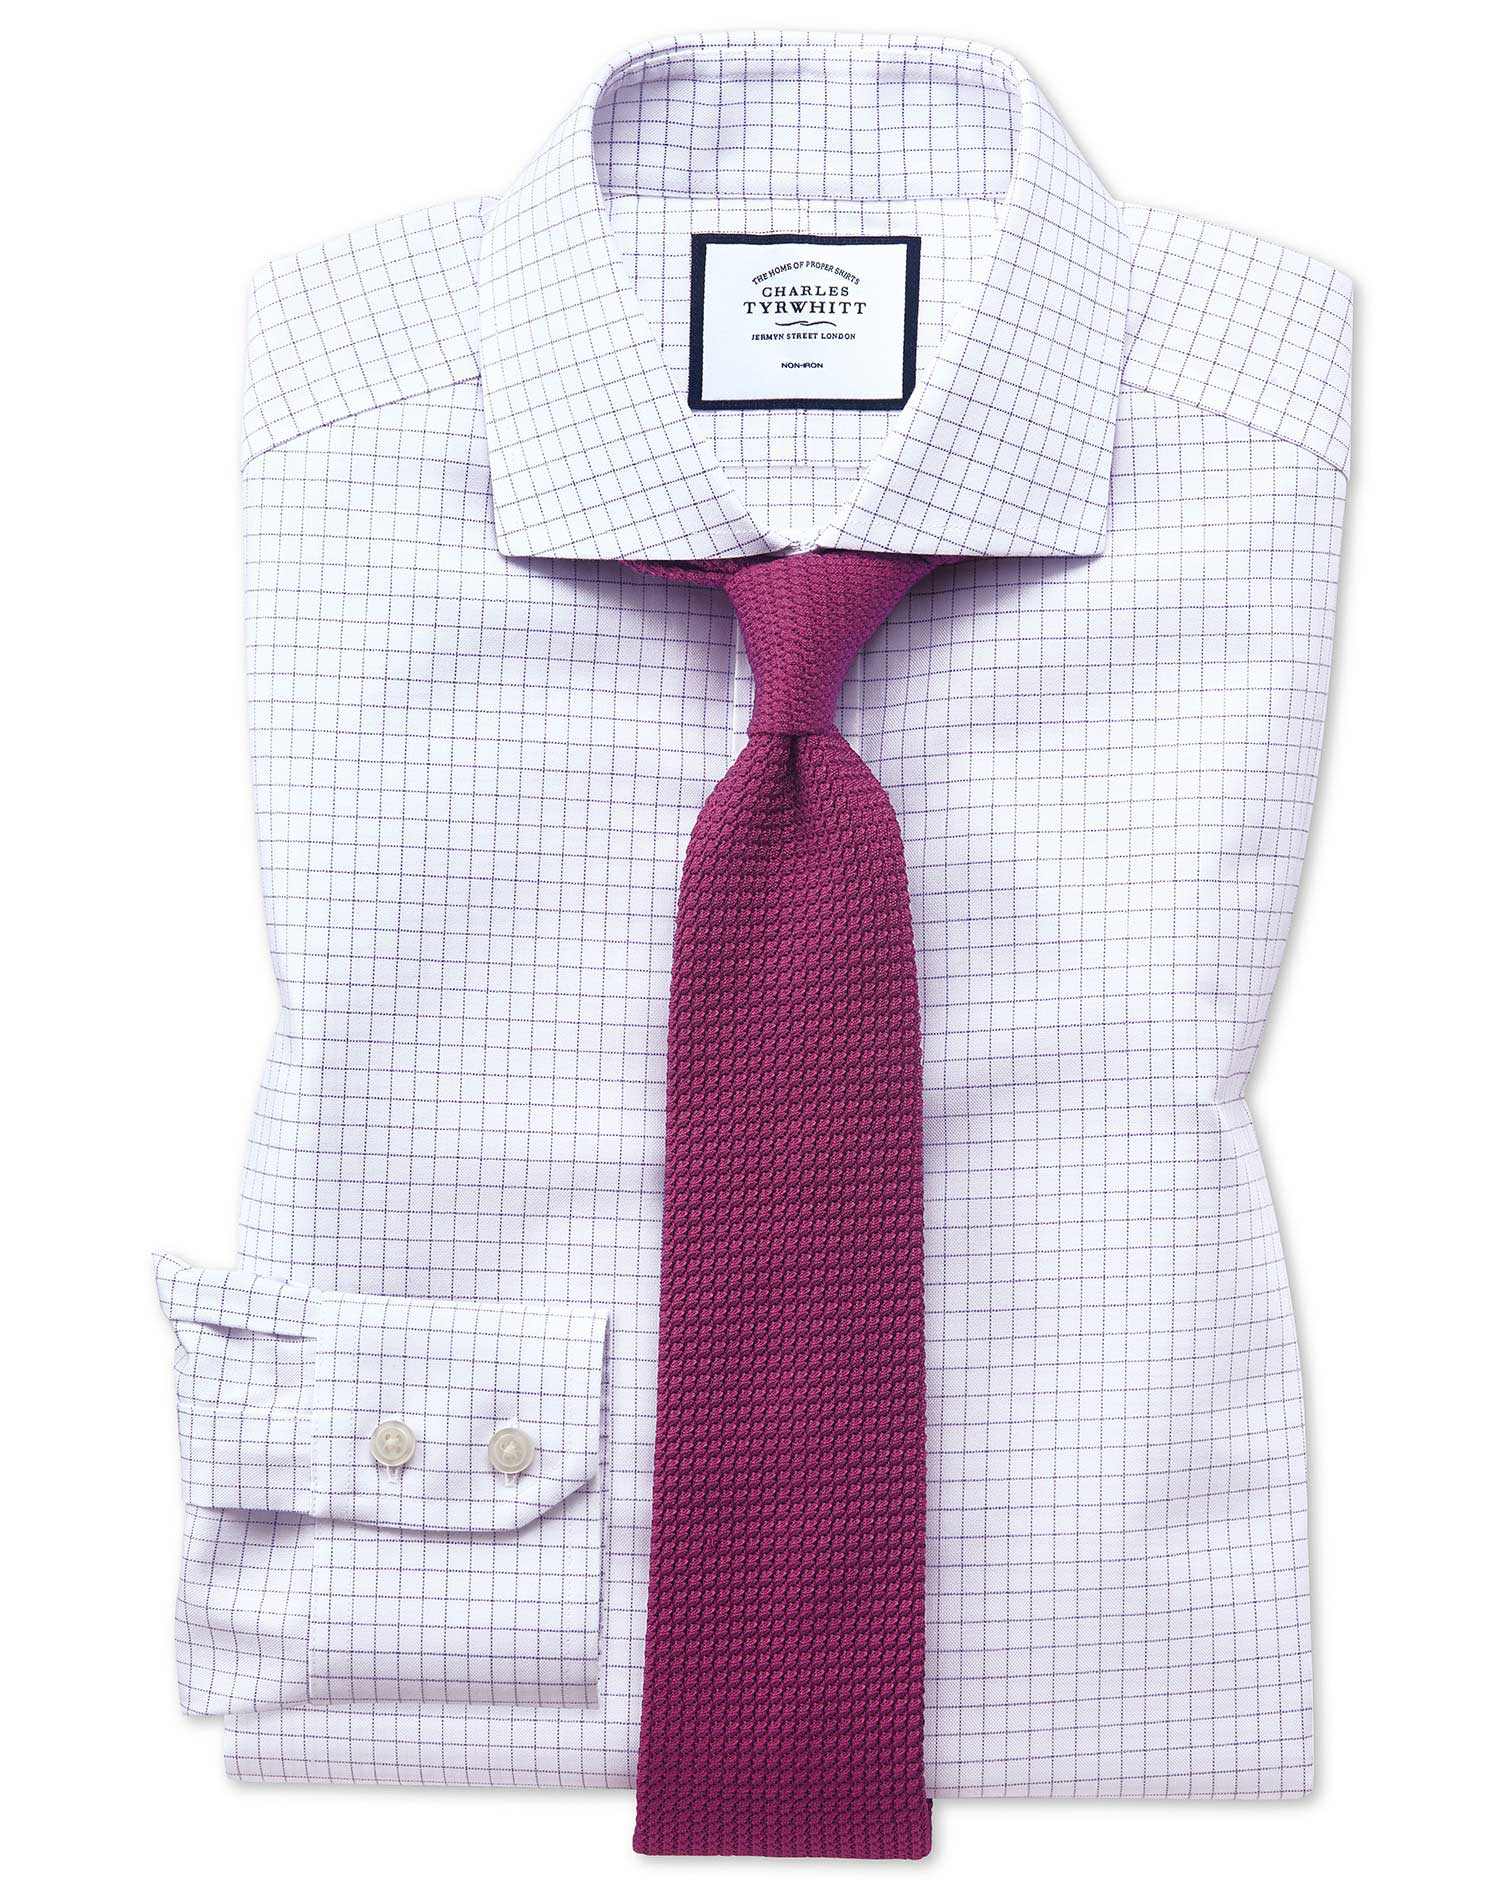 Extra Slim Fit Non-Iron Cutaway Collar Lilac Fine Check Cotton Formal Shirt Single Cuff Size 16.5/35